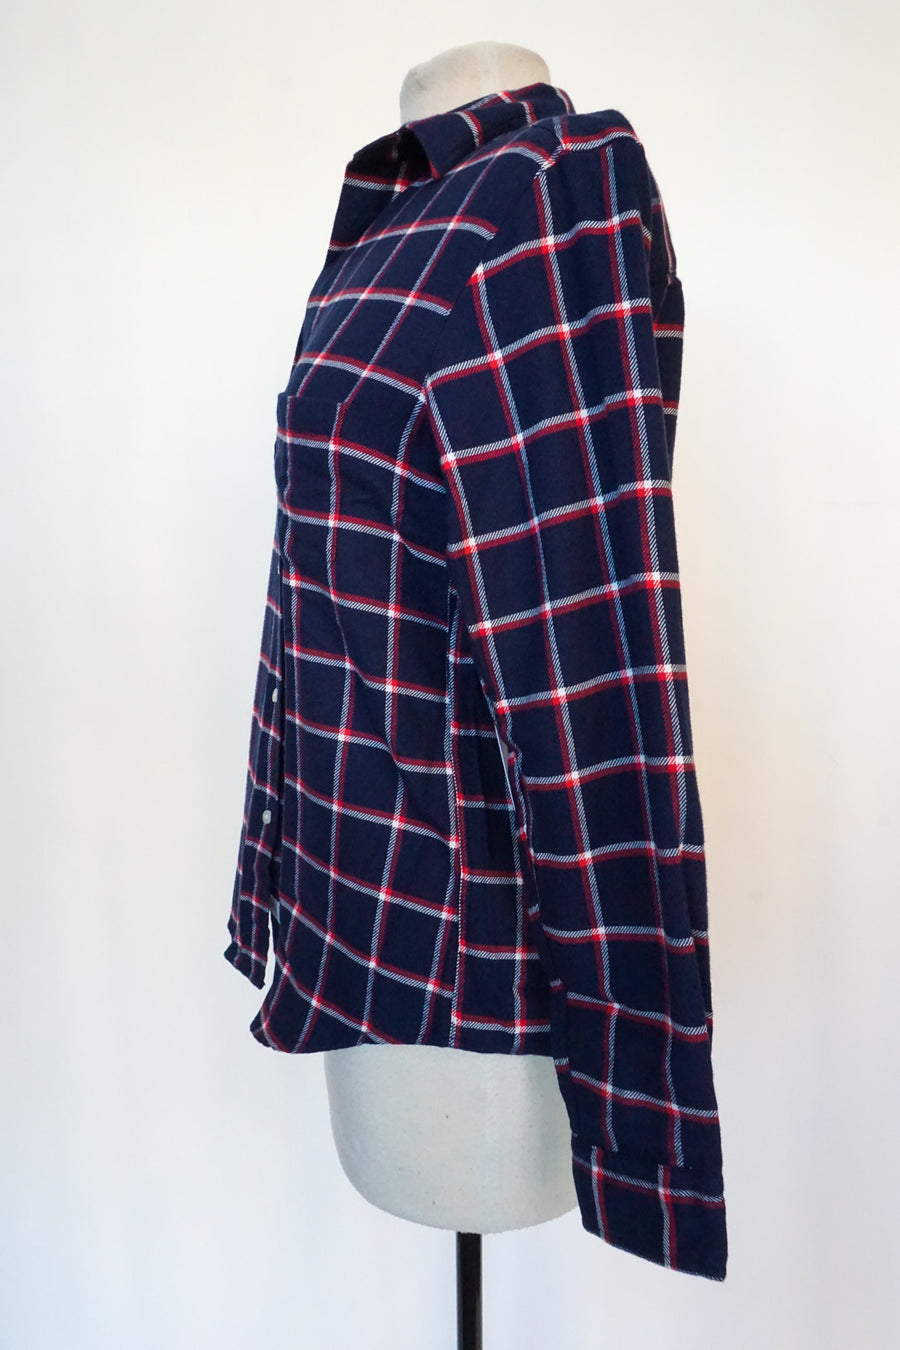 Grayson - Blue With White and Red Tartan